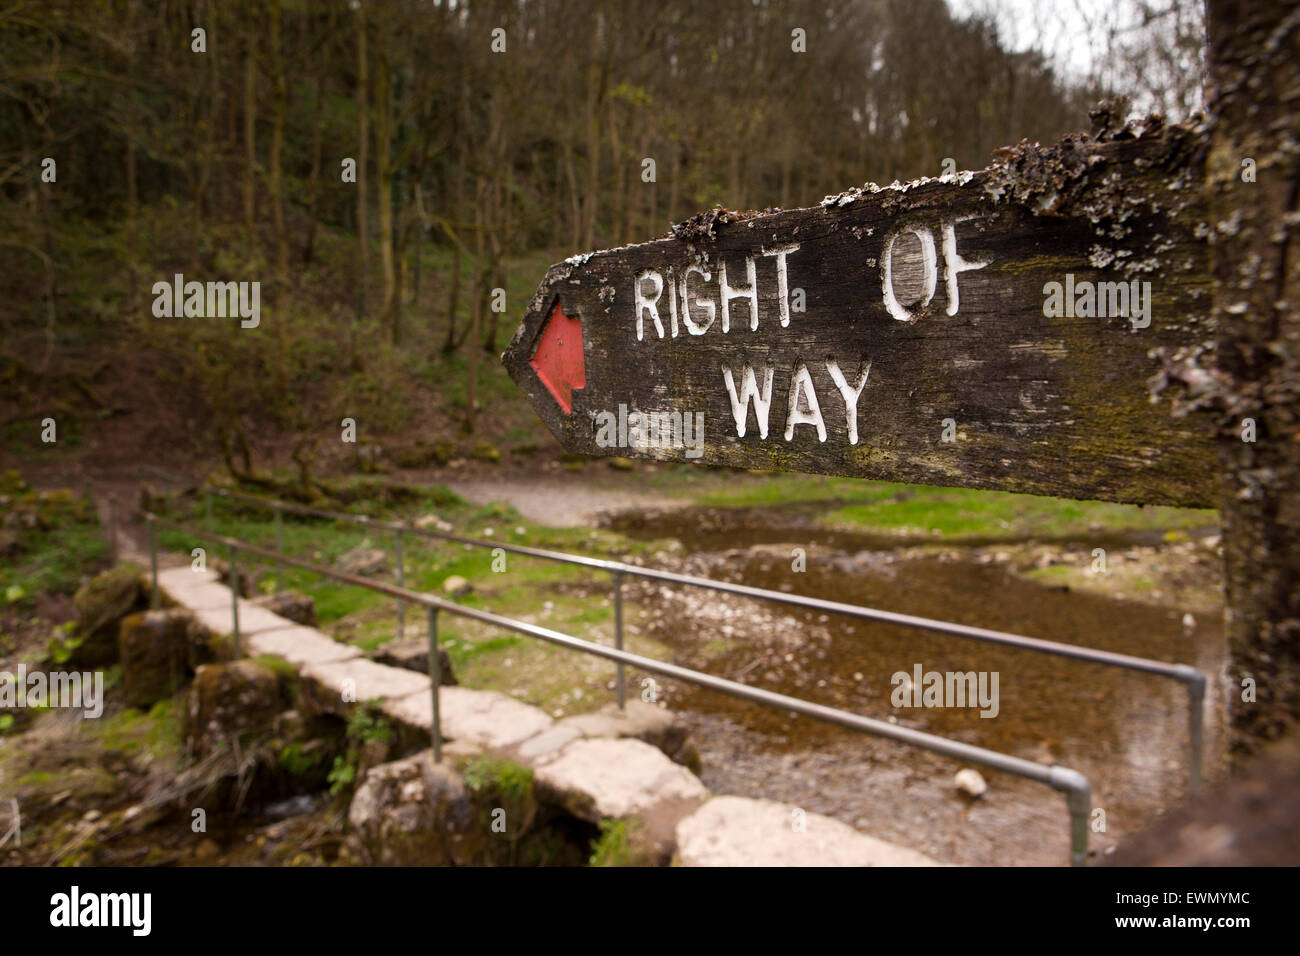 UK, England, Derbyshire, Over Haddon, right of way footpath sign at footbridge over River Lathkill Dale Nature Reserve - Stock Image